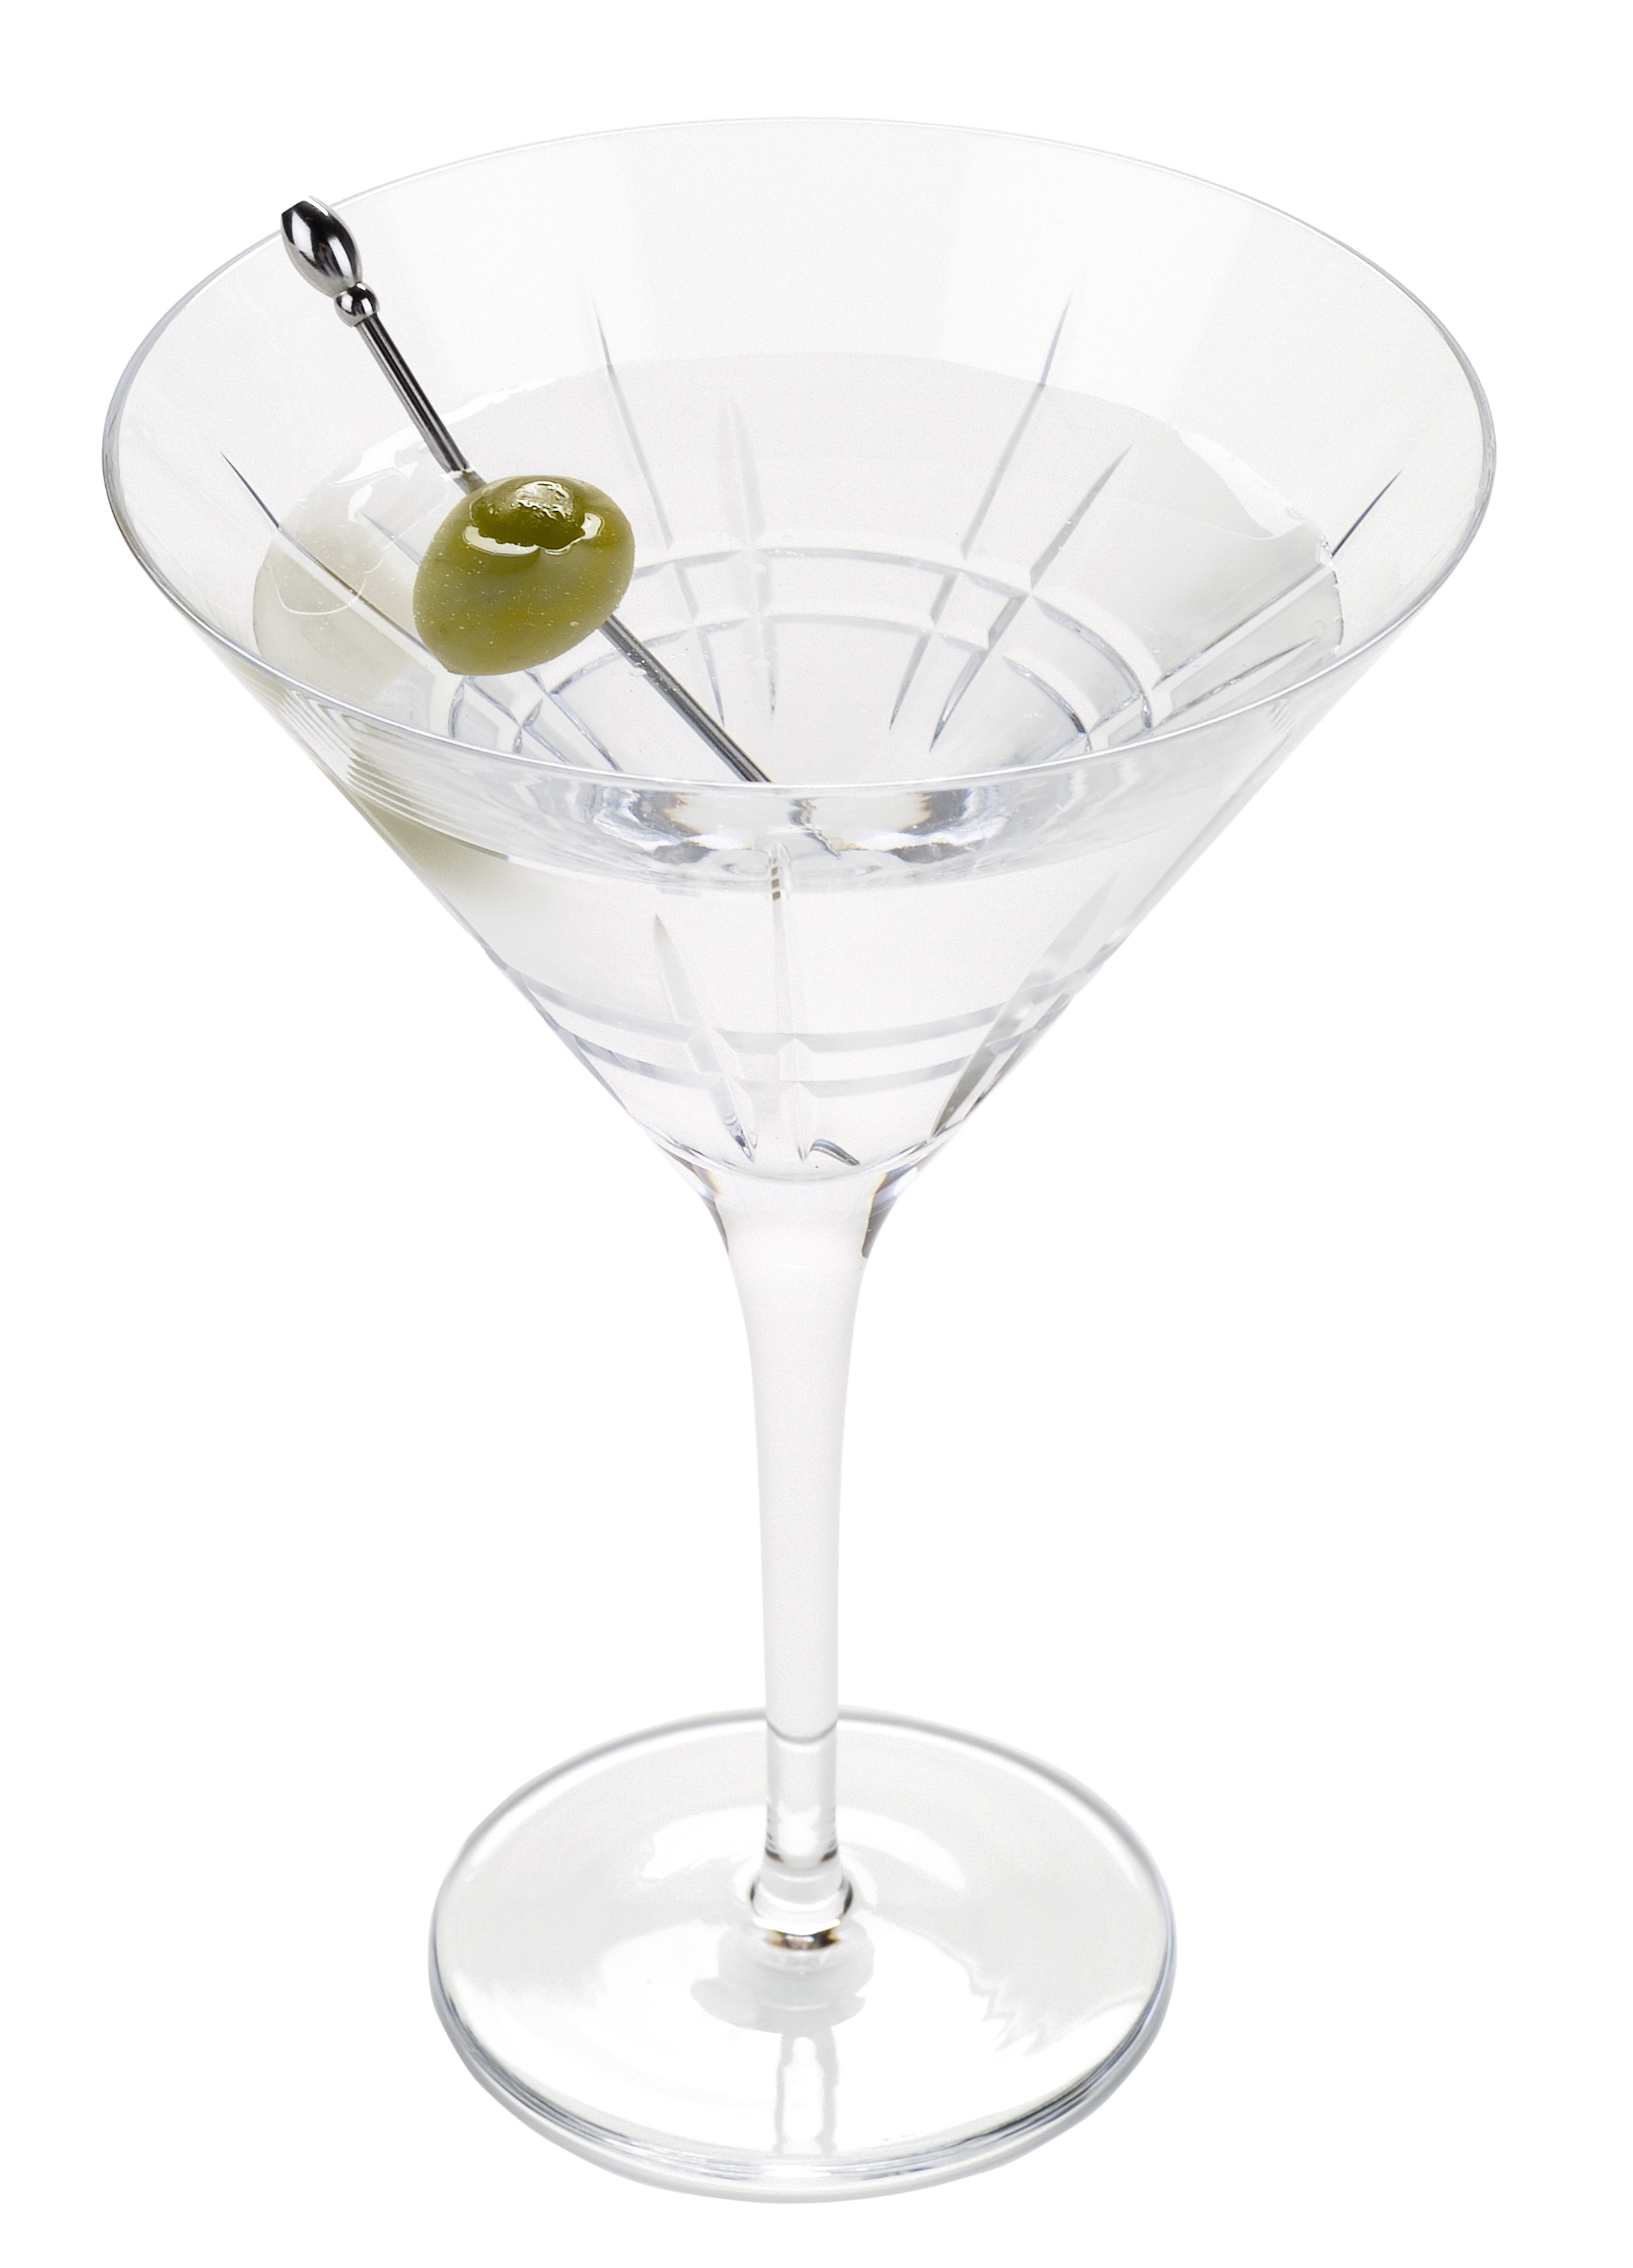 James Bonds Martini